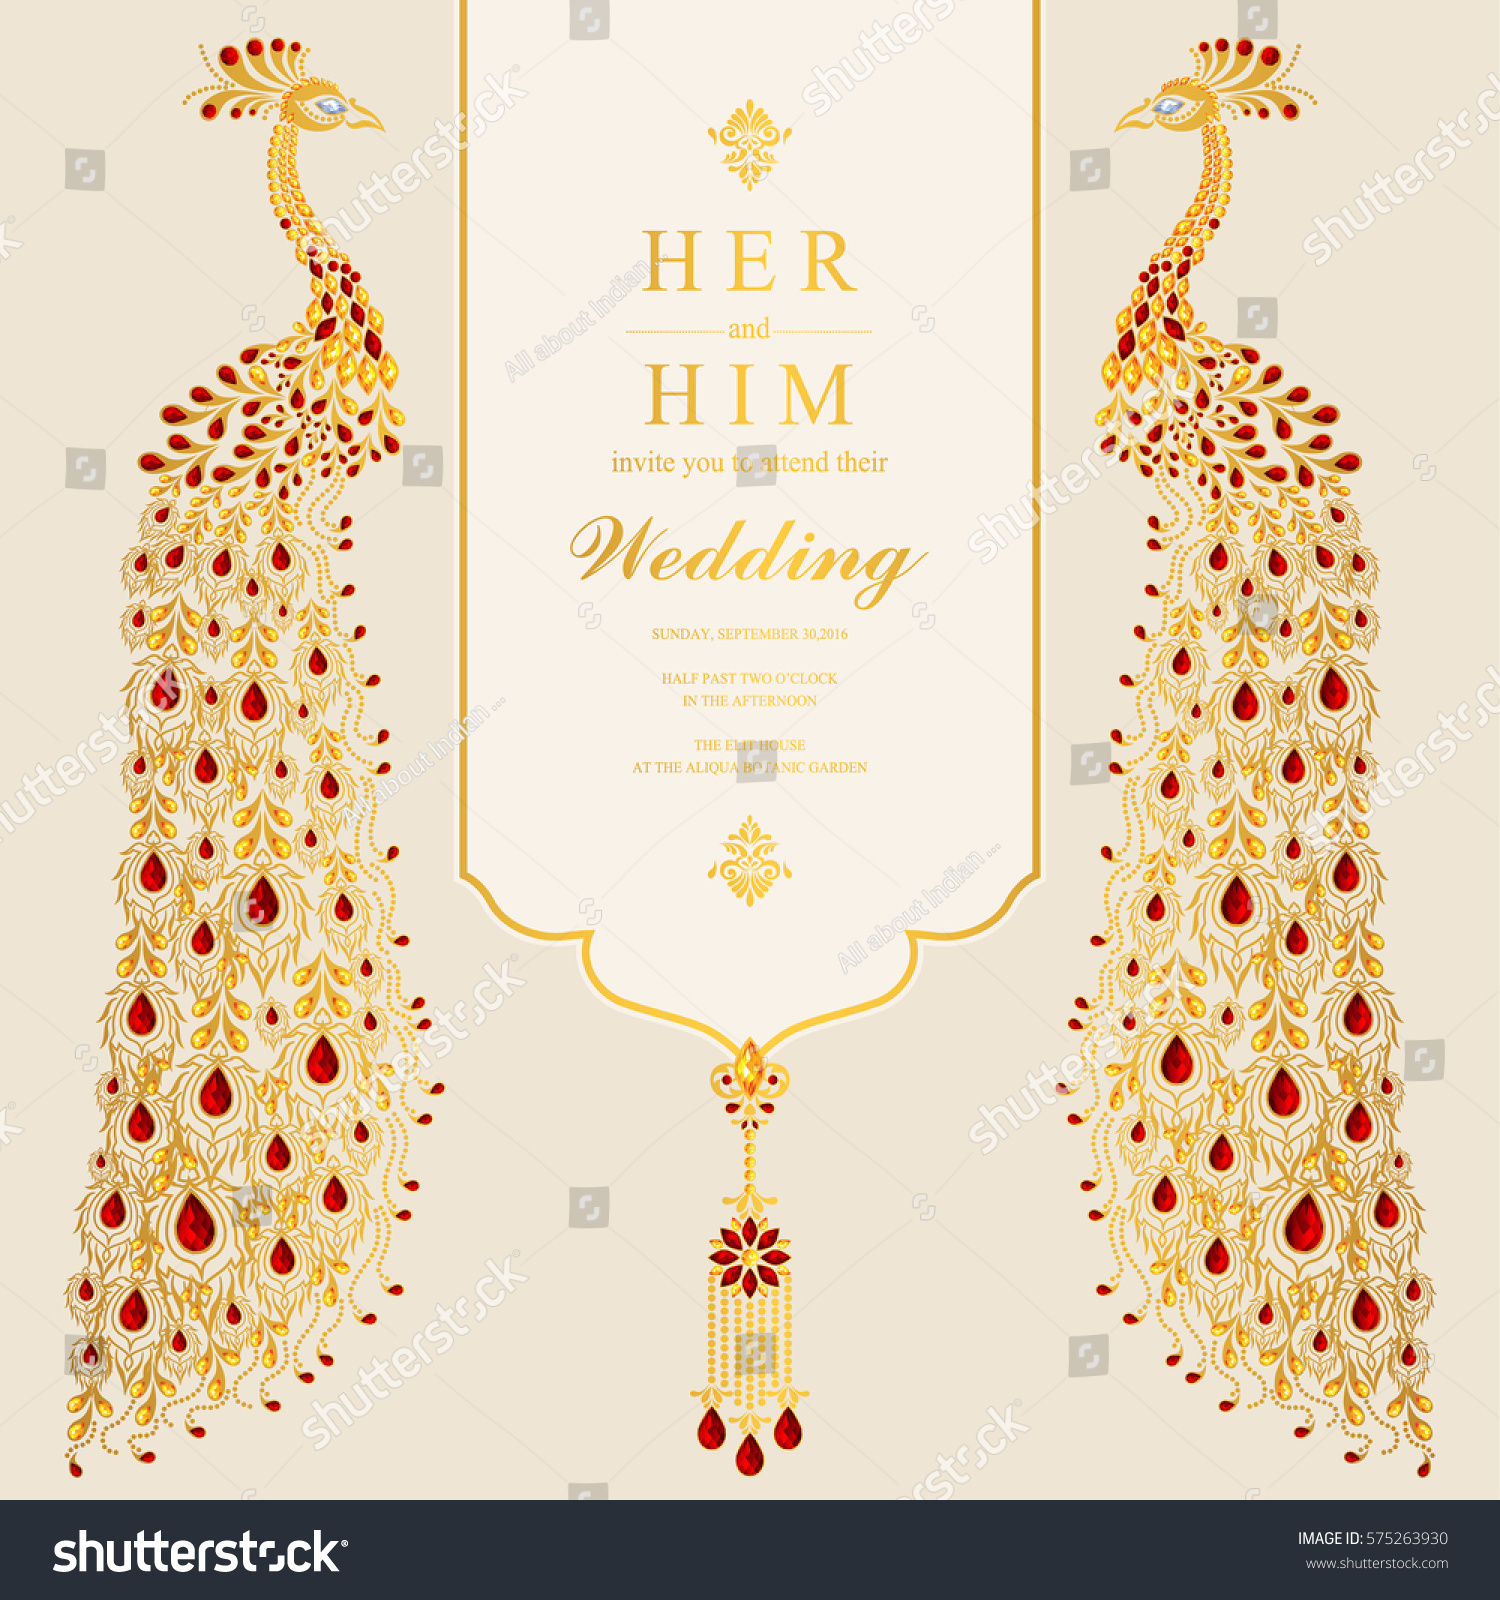 Indian wedding invitation card templates gold em vetor stock indian wedding invitation card templates gold em vetor stock 575263930 shutterstock stopboris Images